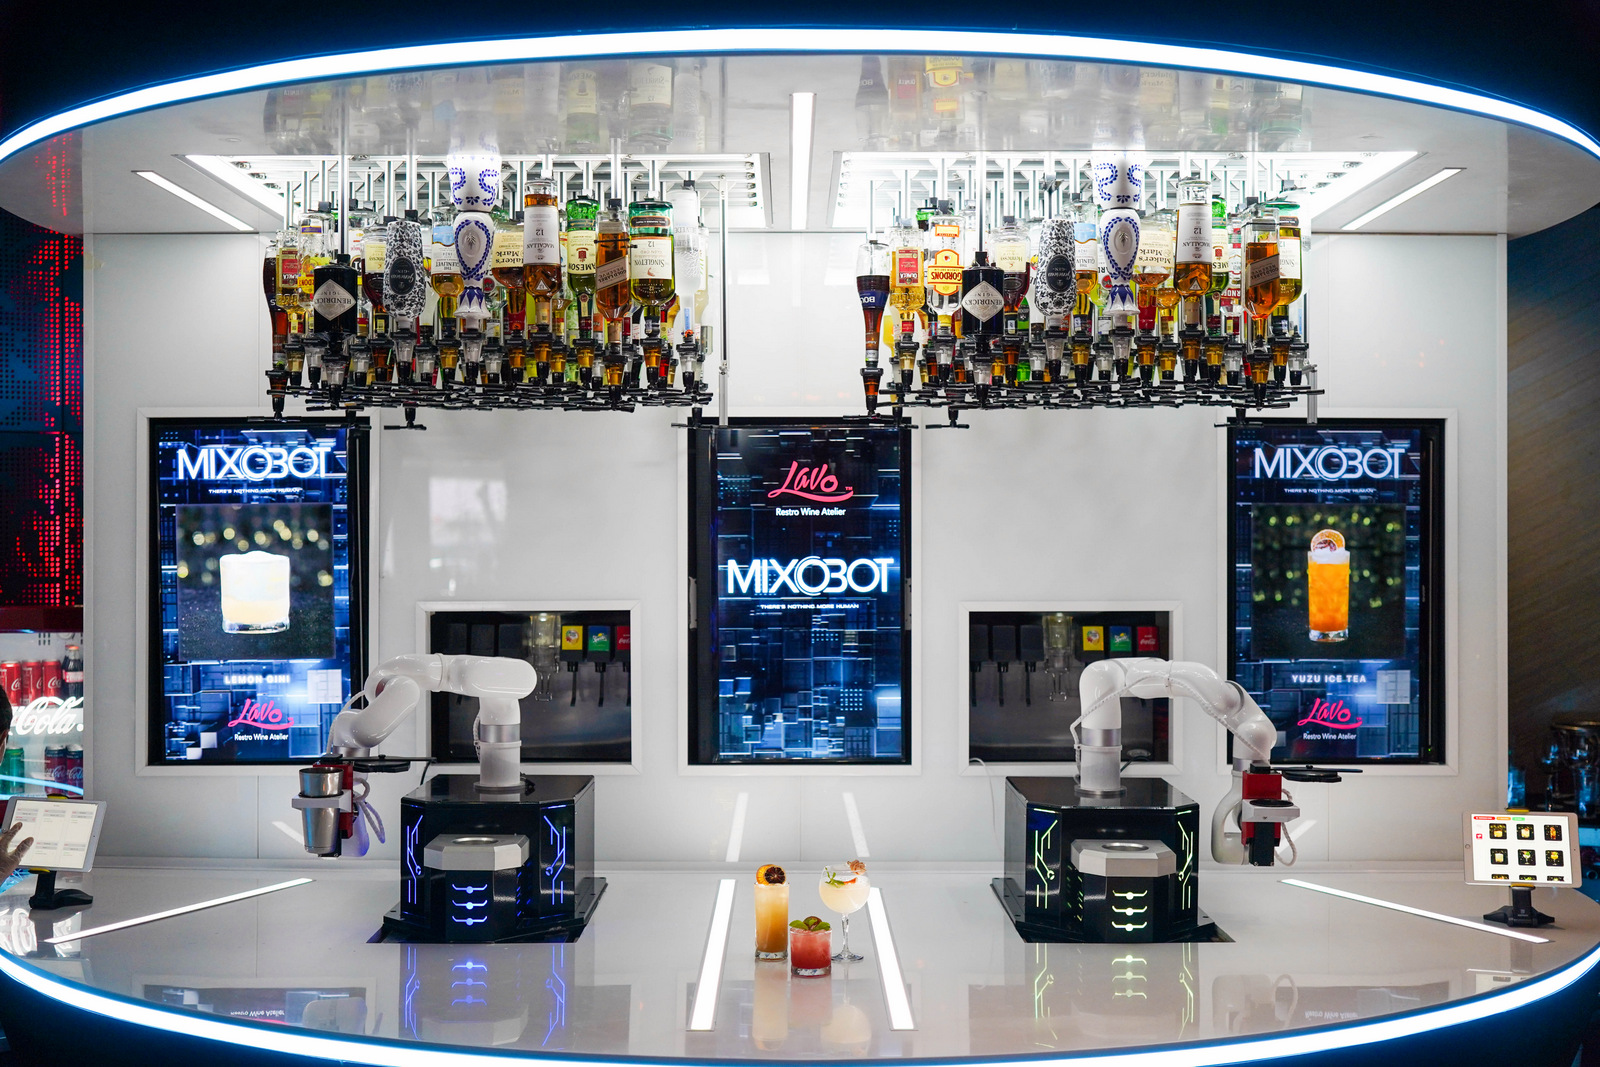 MixoBot: Malaysia's first robot mixologist shakes up a cocktail storm at Petaling Jaya's LAVO